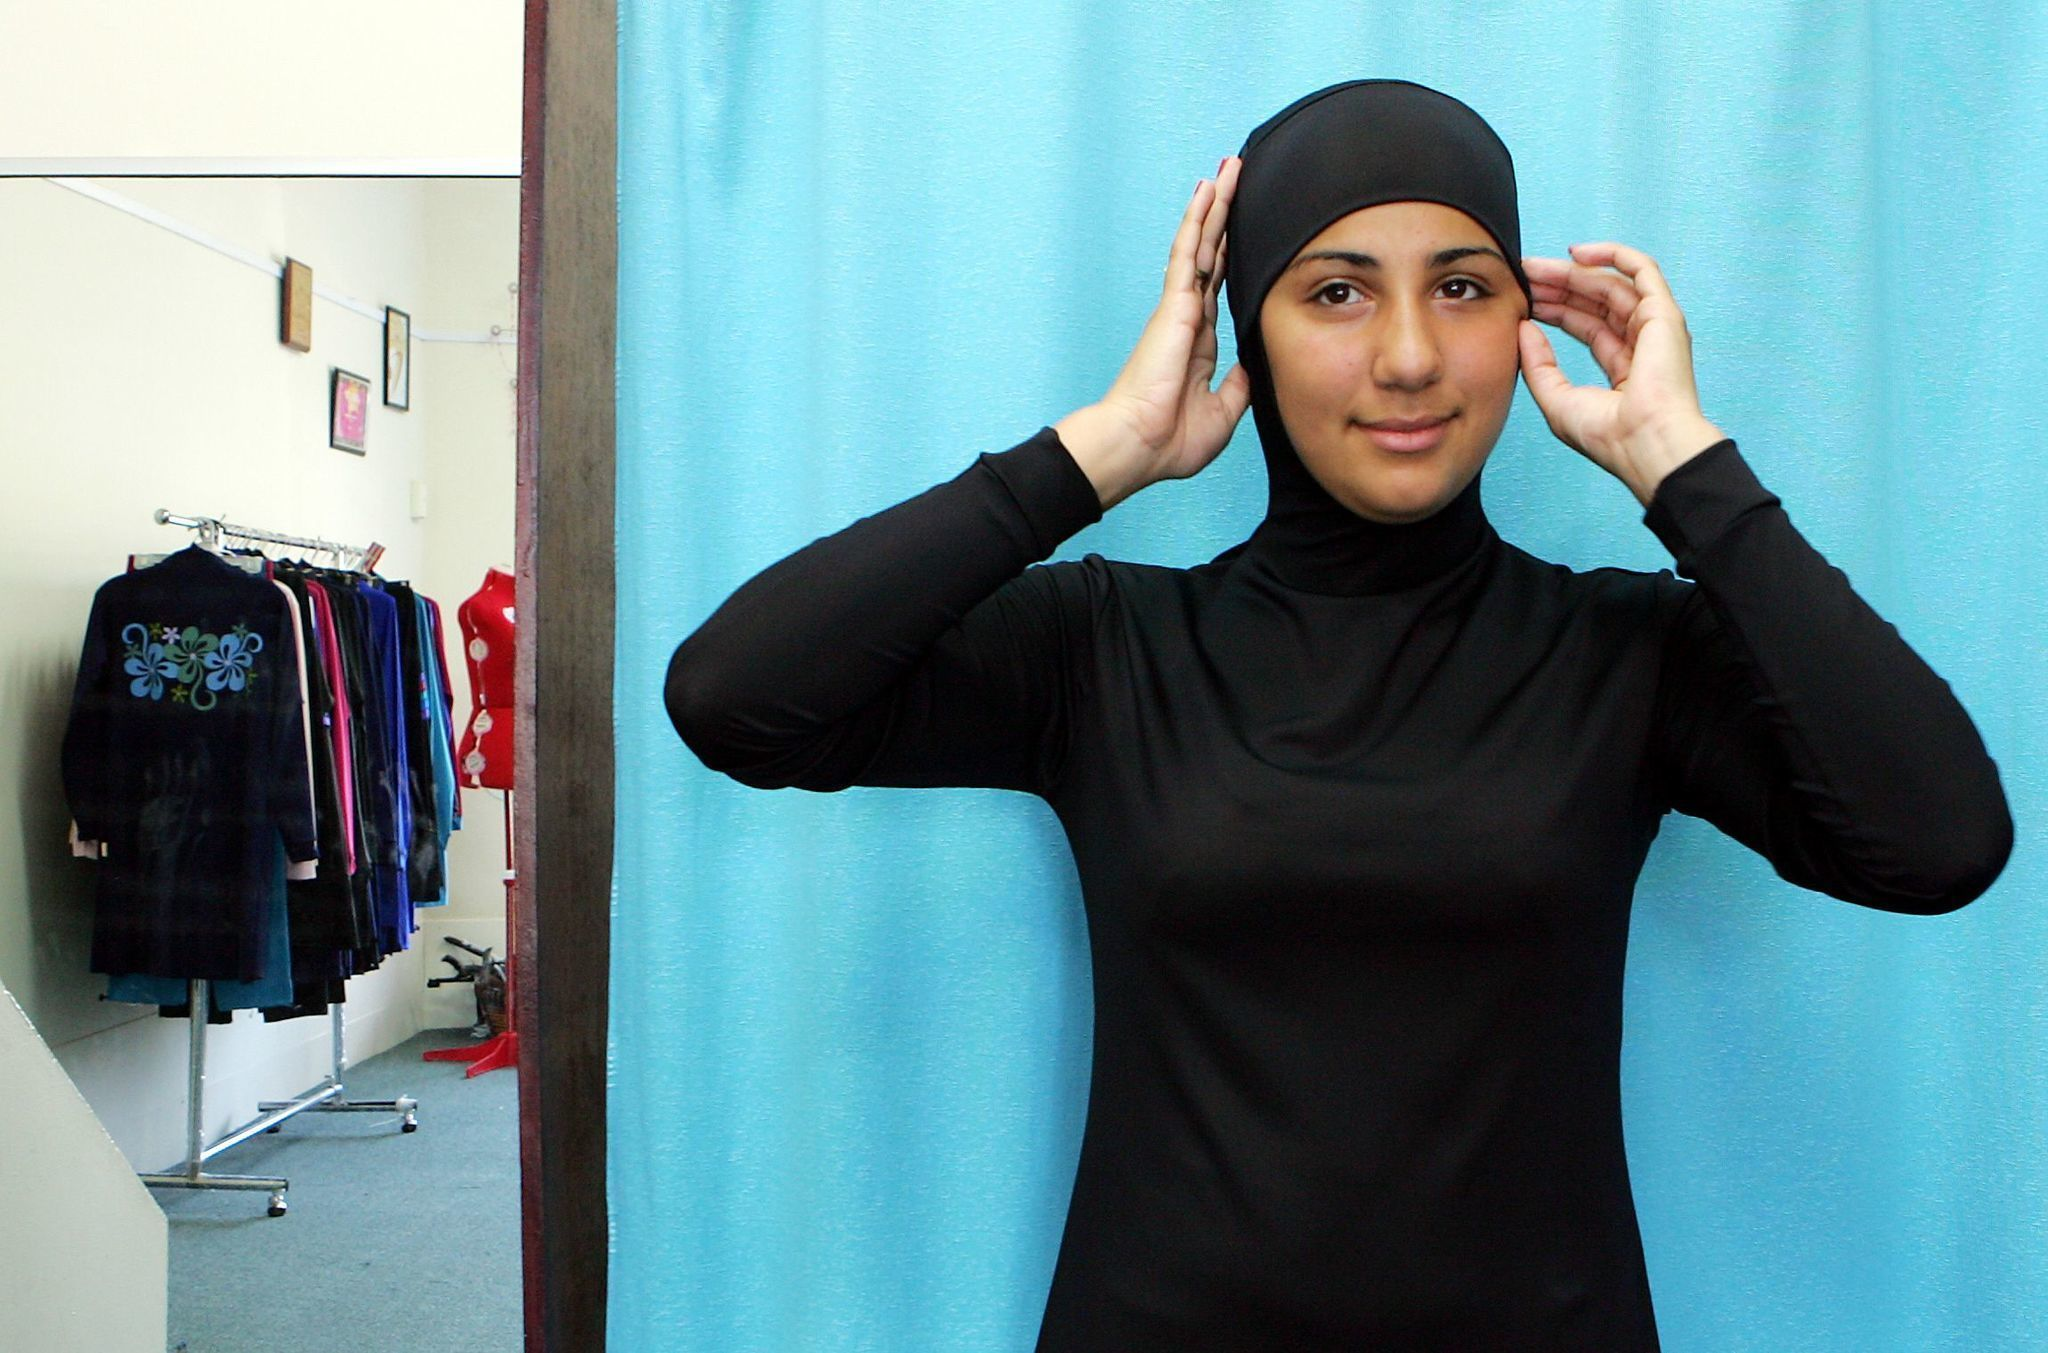 39 Burkini 39 Day At French Swimming Pool Canceled After Outcry La Times